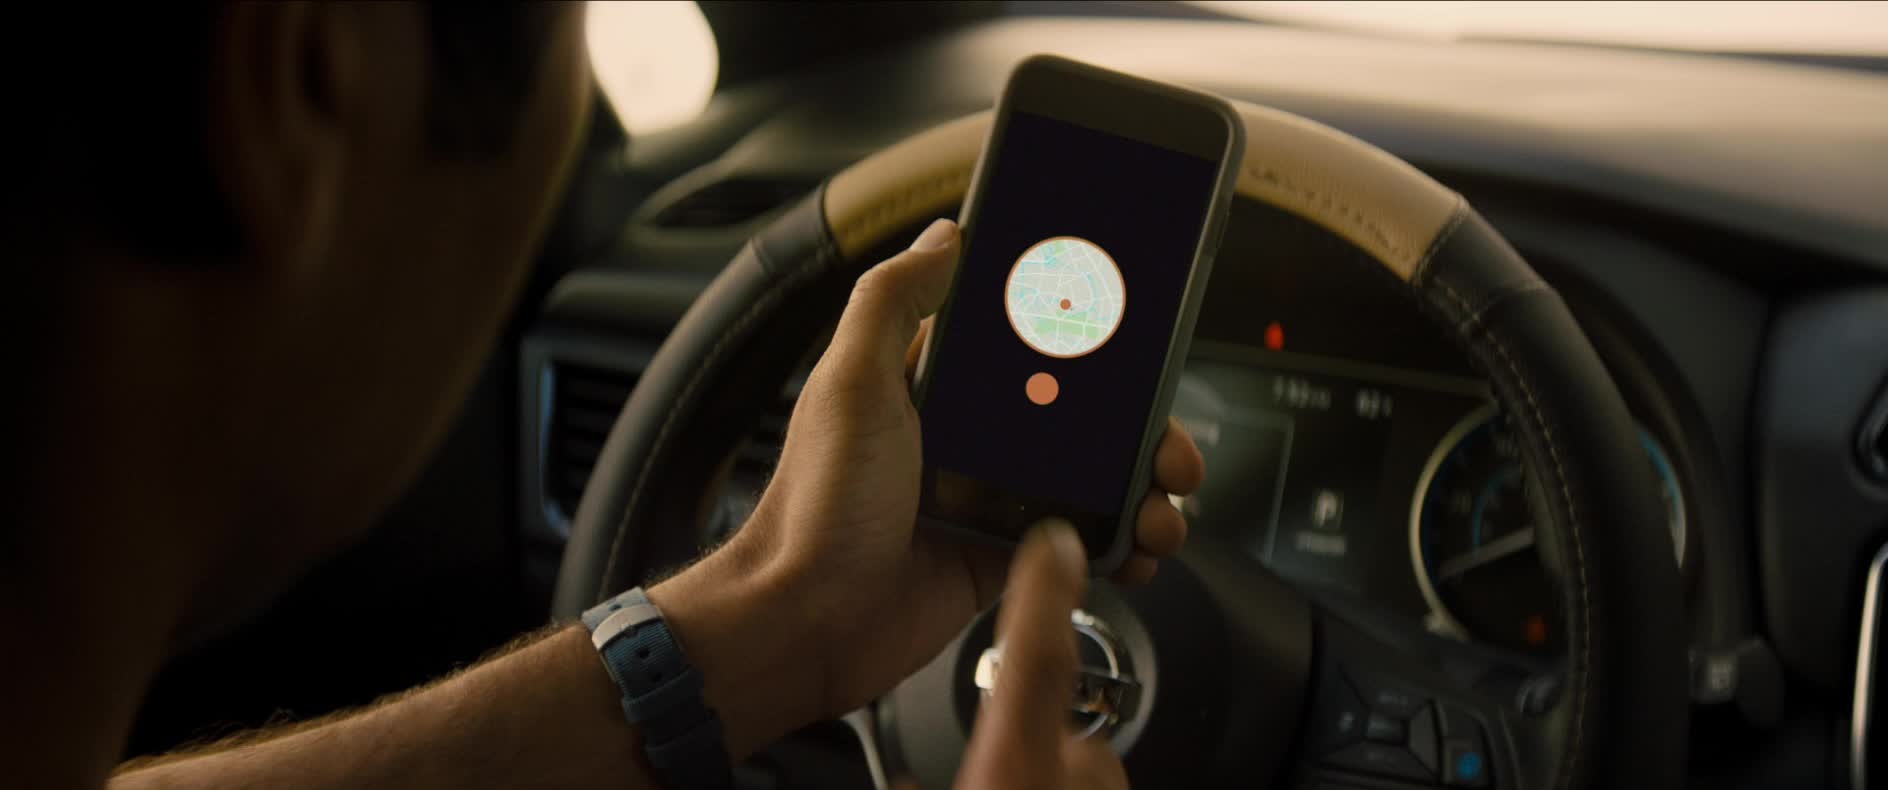 stuber, stuber movie, uber, Uber Accept Ride GIFs